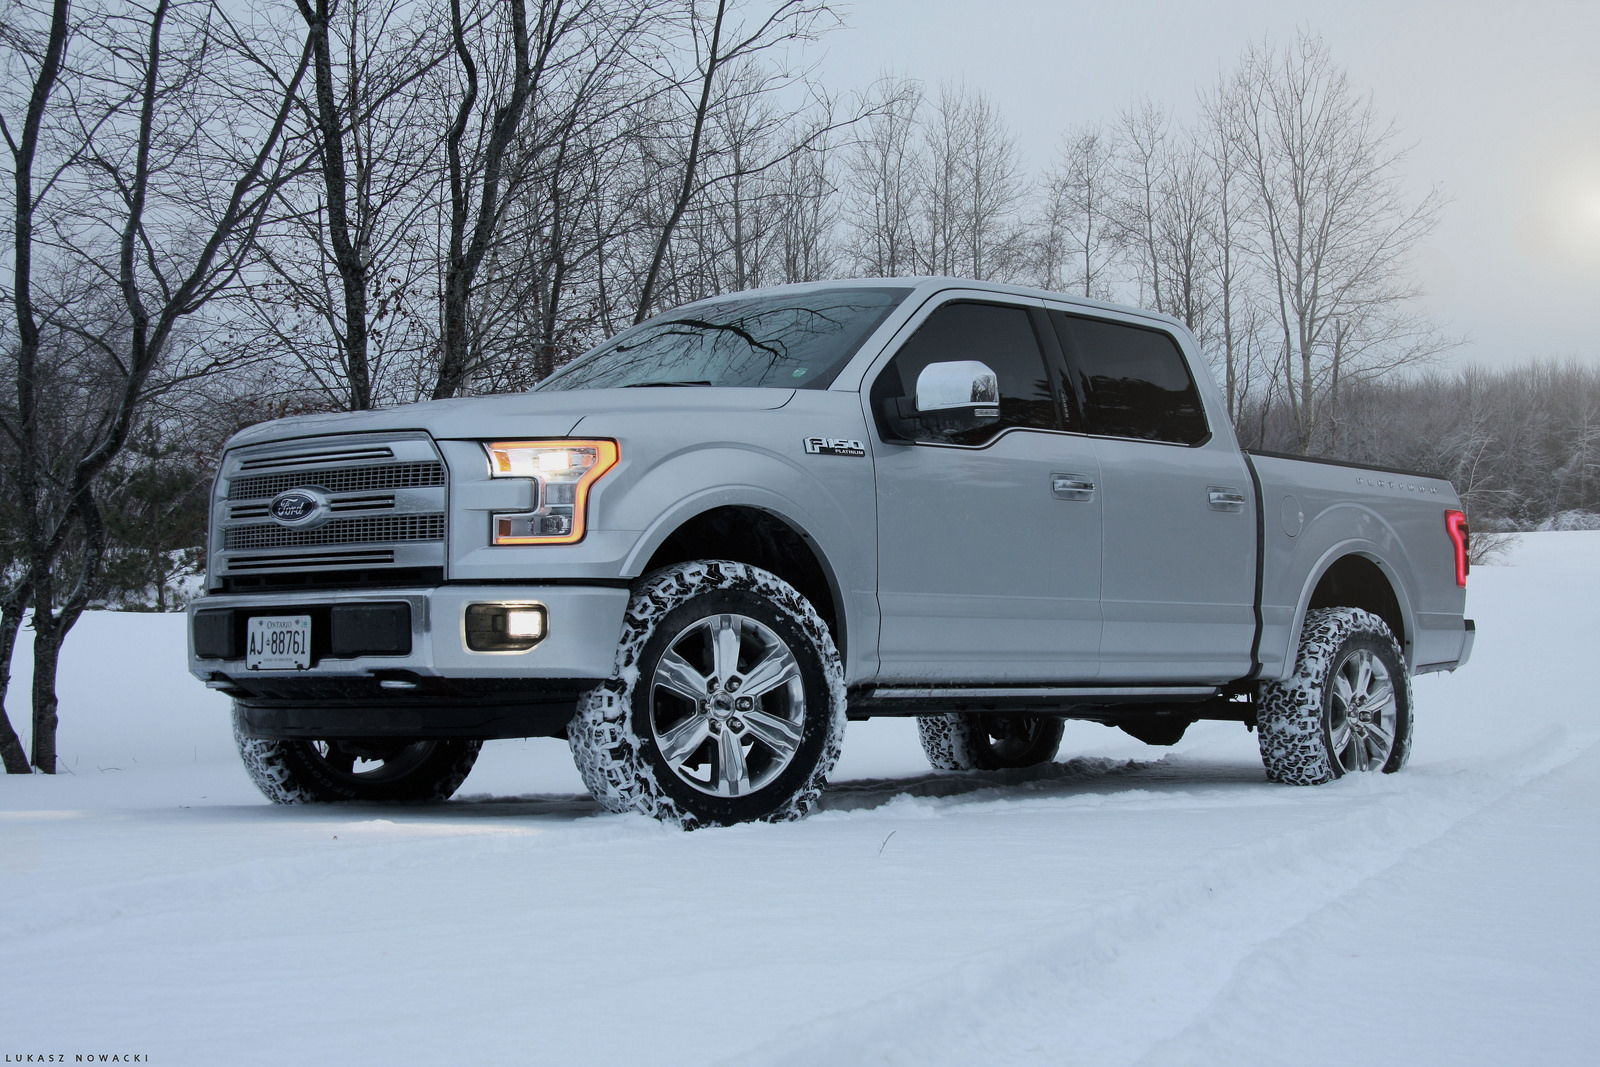 my 2015 lifted platinum page 35 ford f150 forum. Black Bedroom Furniture Sets. Home Design Ideas